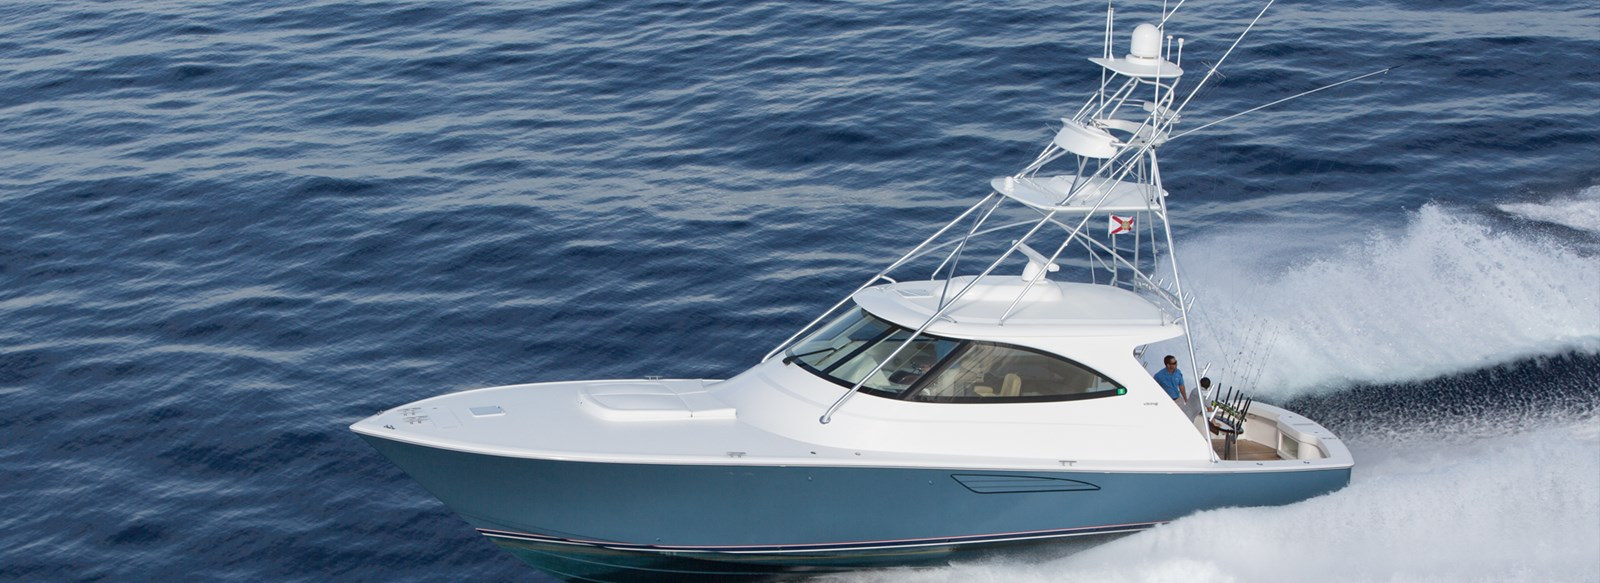 New Viking 52 Open Yachts For Sale